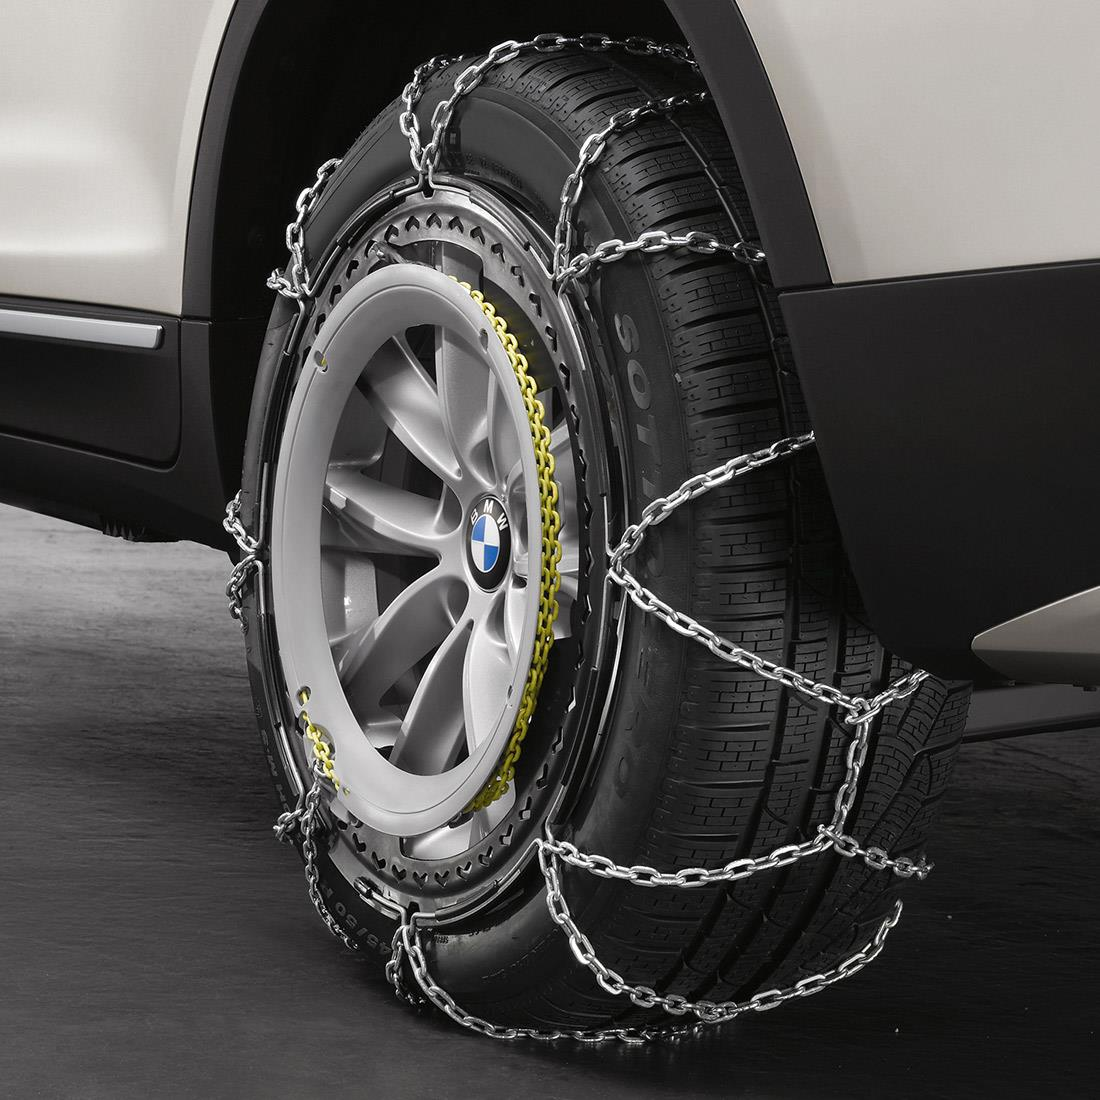 BMW Snow Chain Disc for R17 and R18